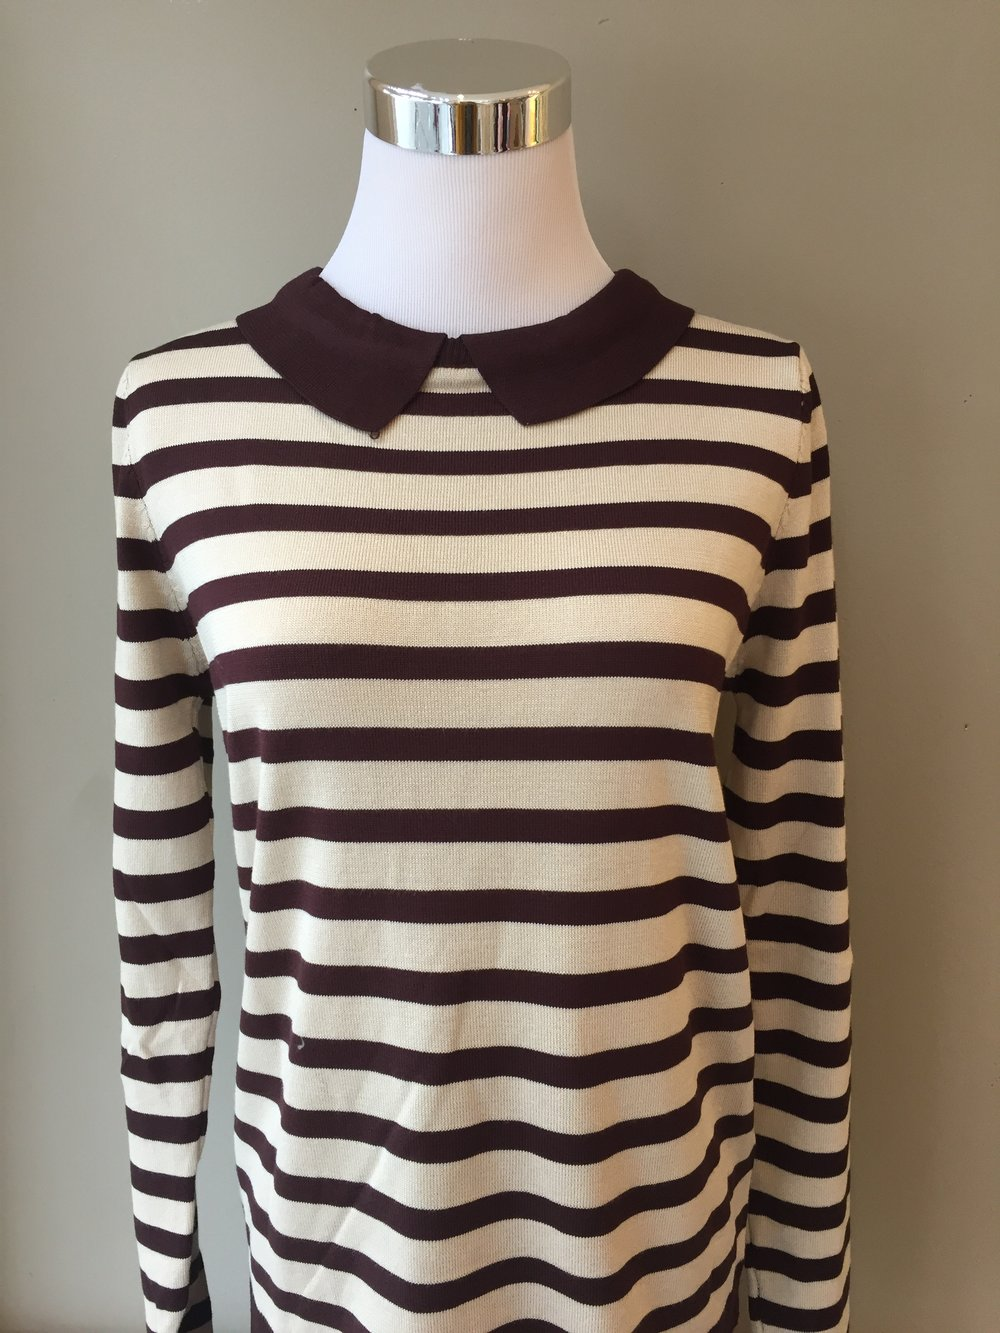 Collared striped sweater ($32)